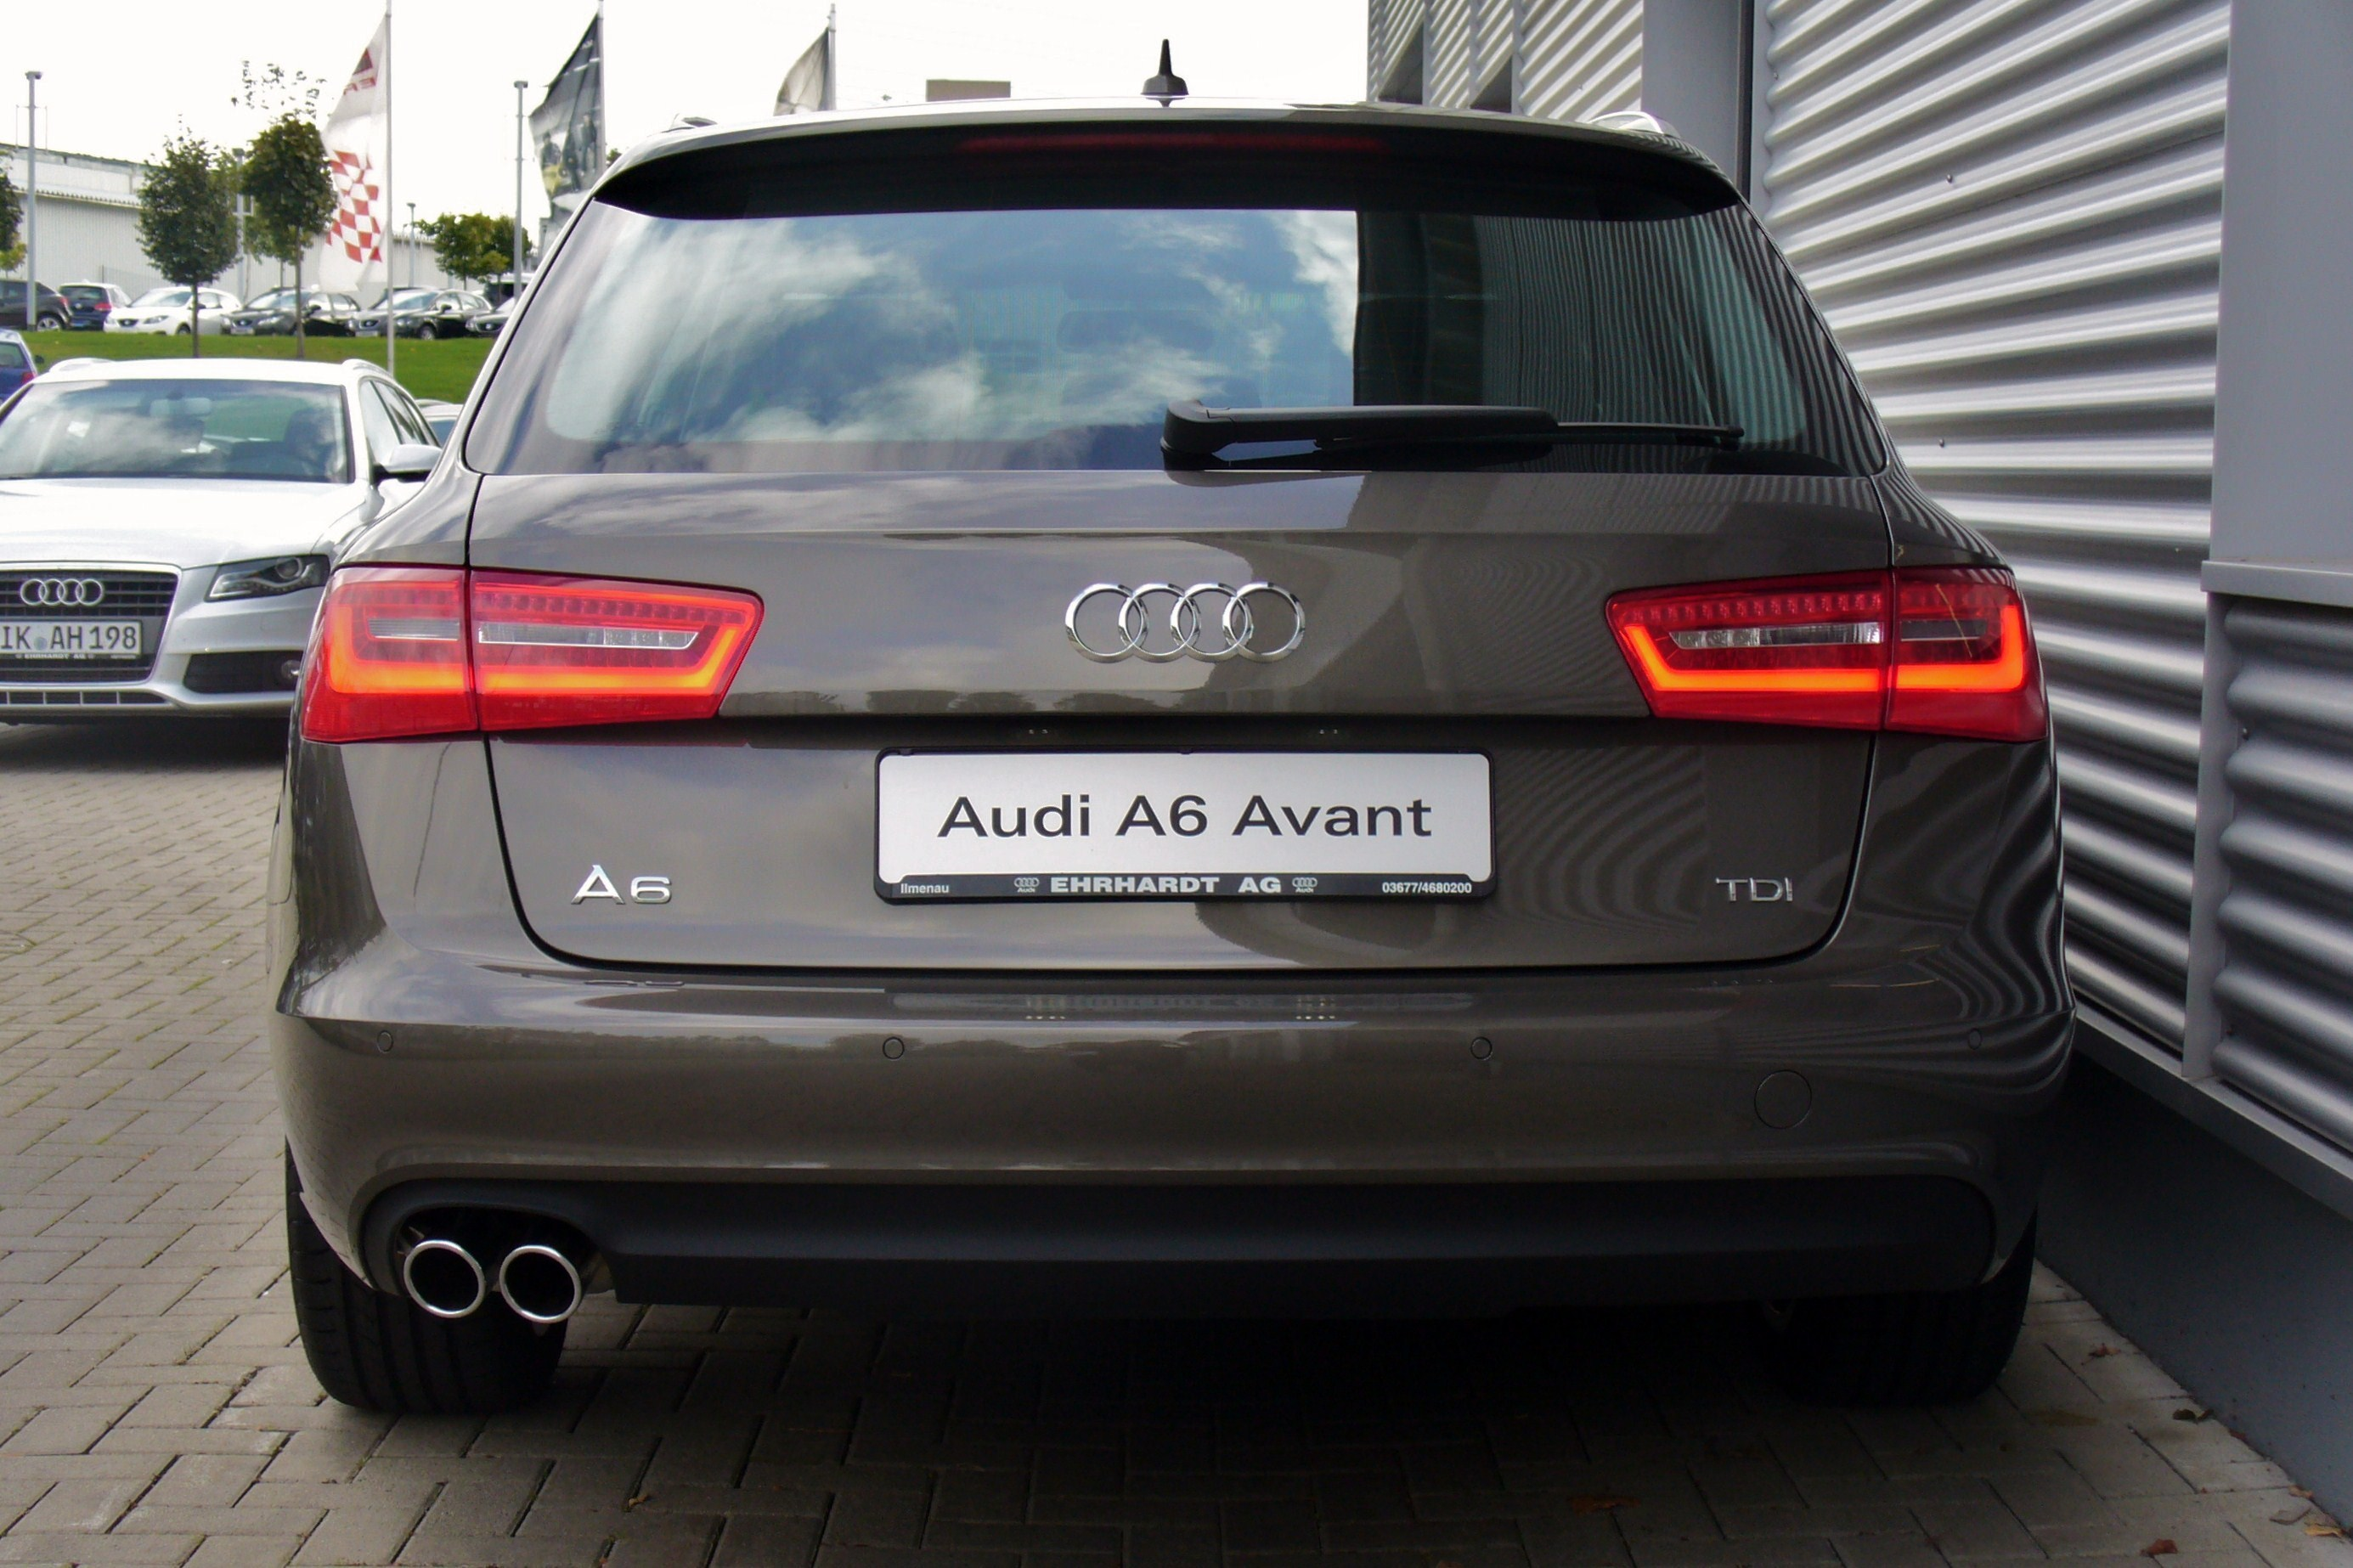 audi a6 avant tdi technical details history photos on better parts ltd. Black Bedroom Furniture Sets. Home Design Ideas